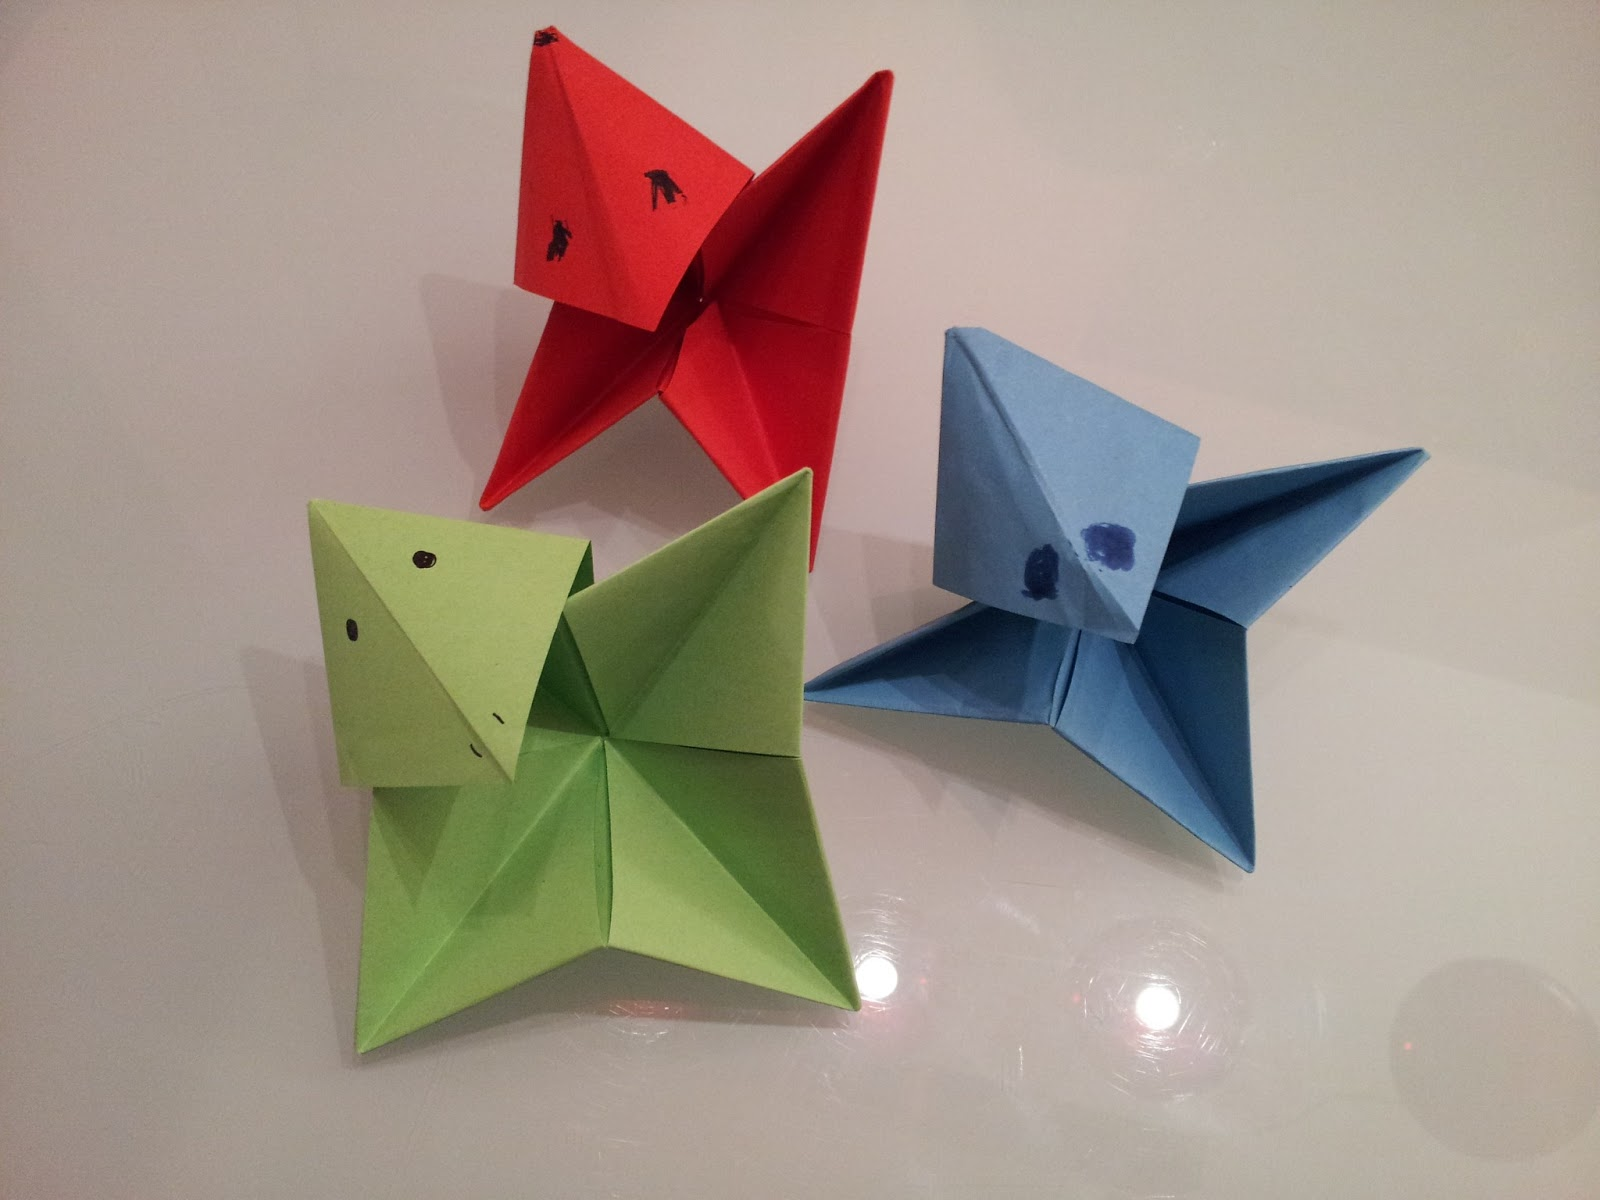 Paper moon origami third lesson by this time they were getting pretty tired and sleepy but when has a kid ever consented to stopping they always want more we quickly made these awkward jeuxipadfo Choice Image